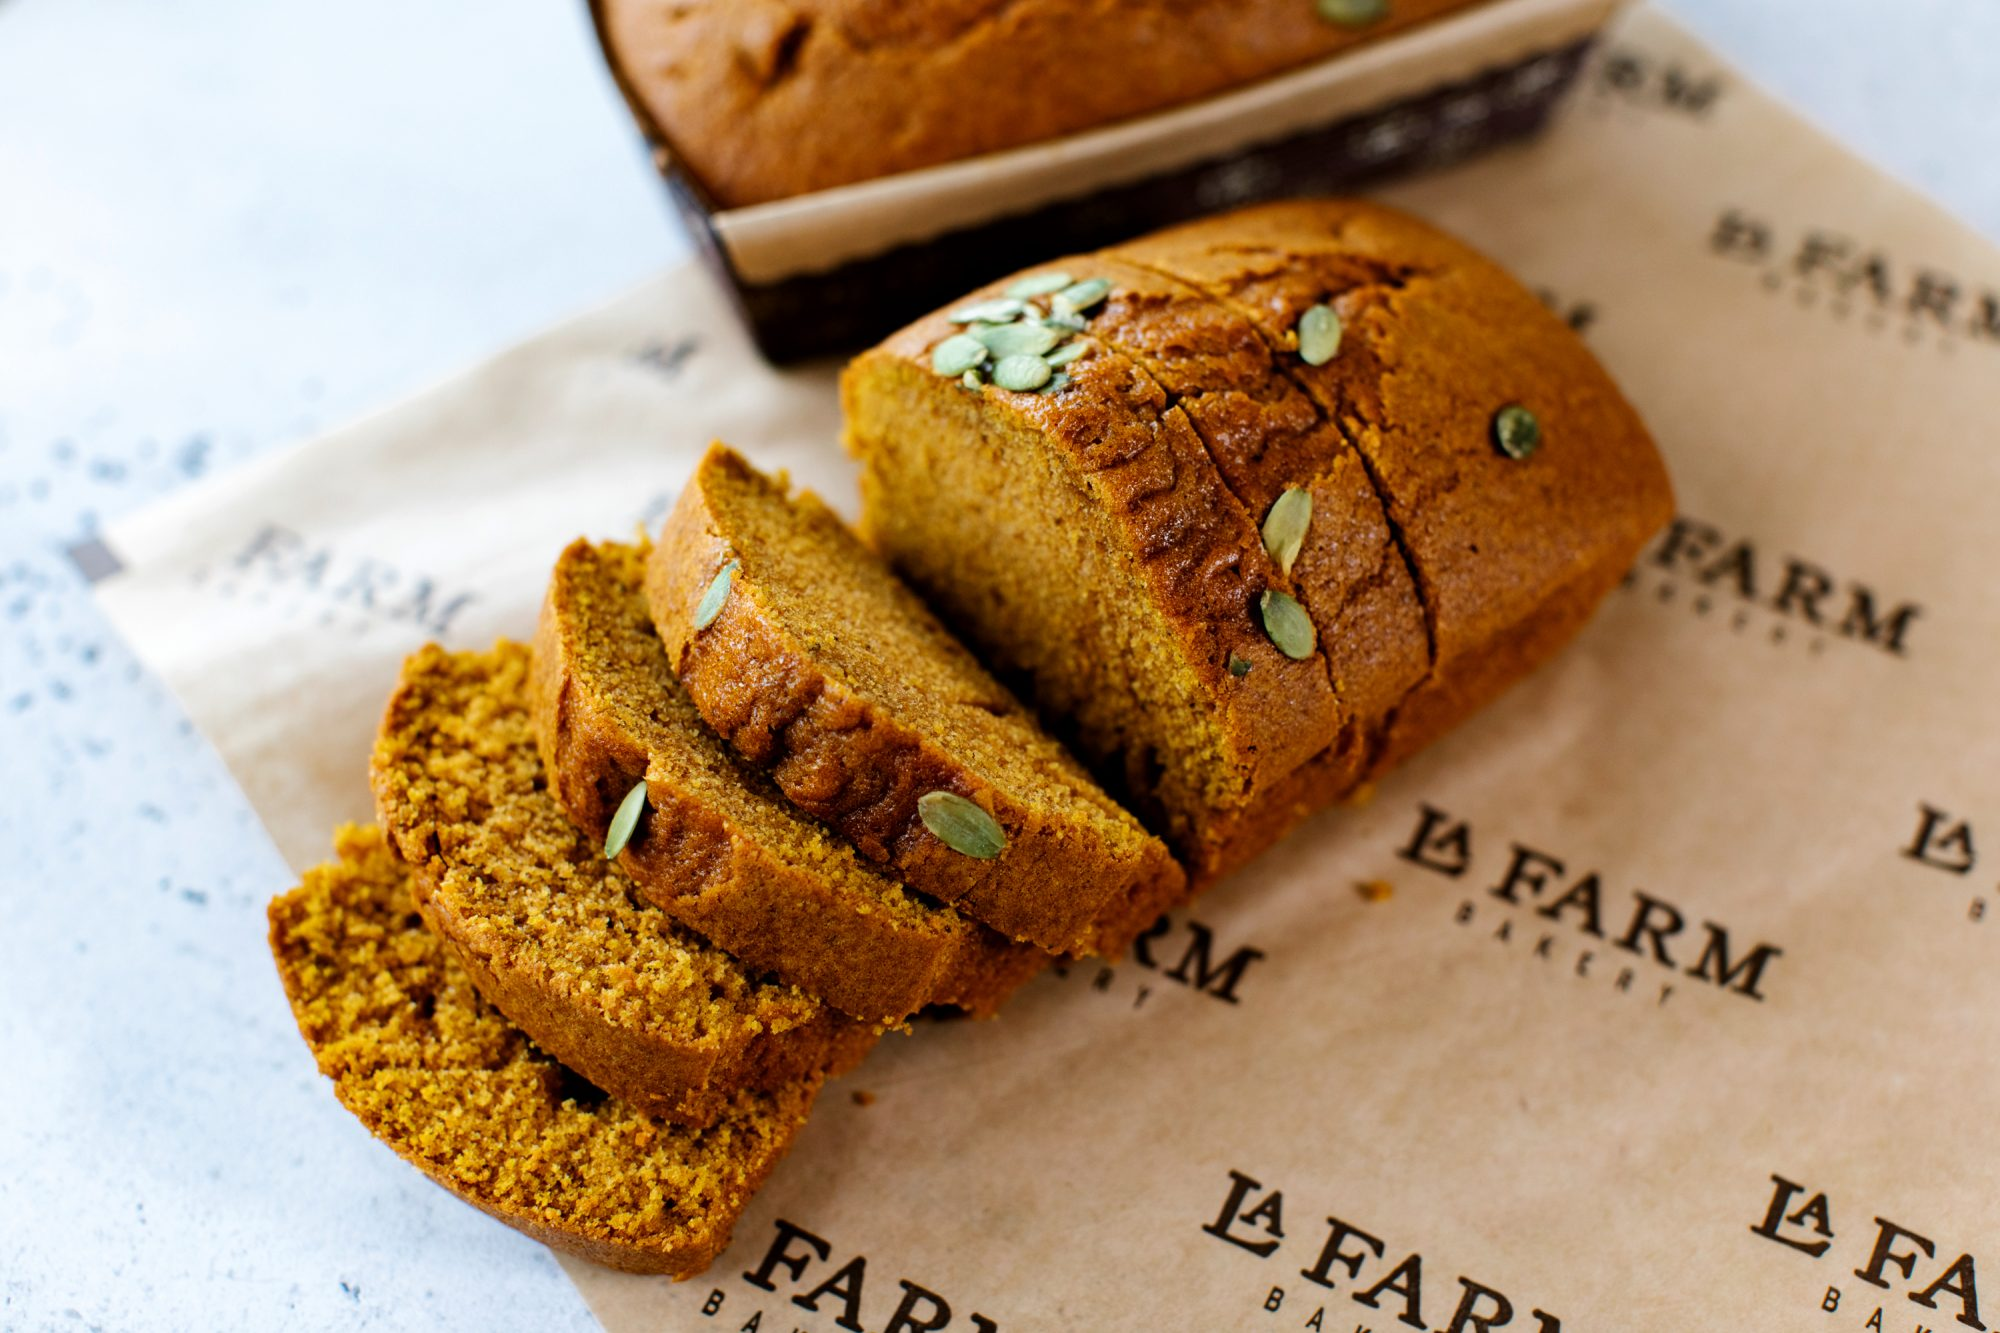 Pumpkin Bread from La Farm Bakery